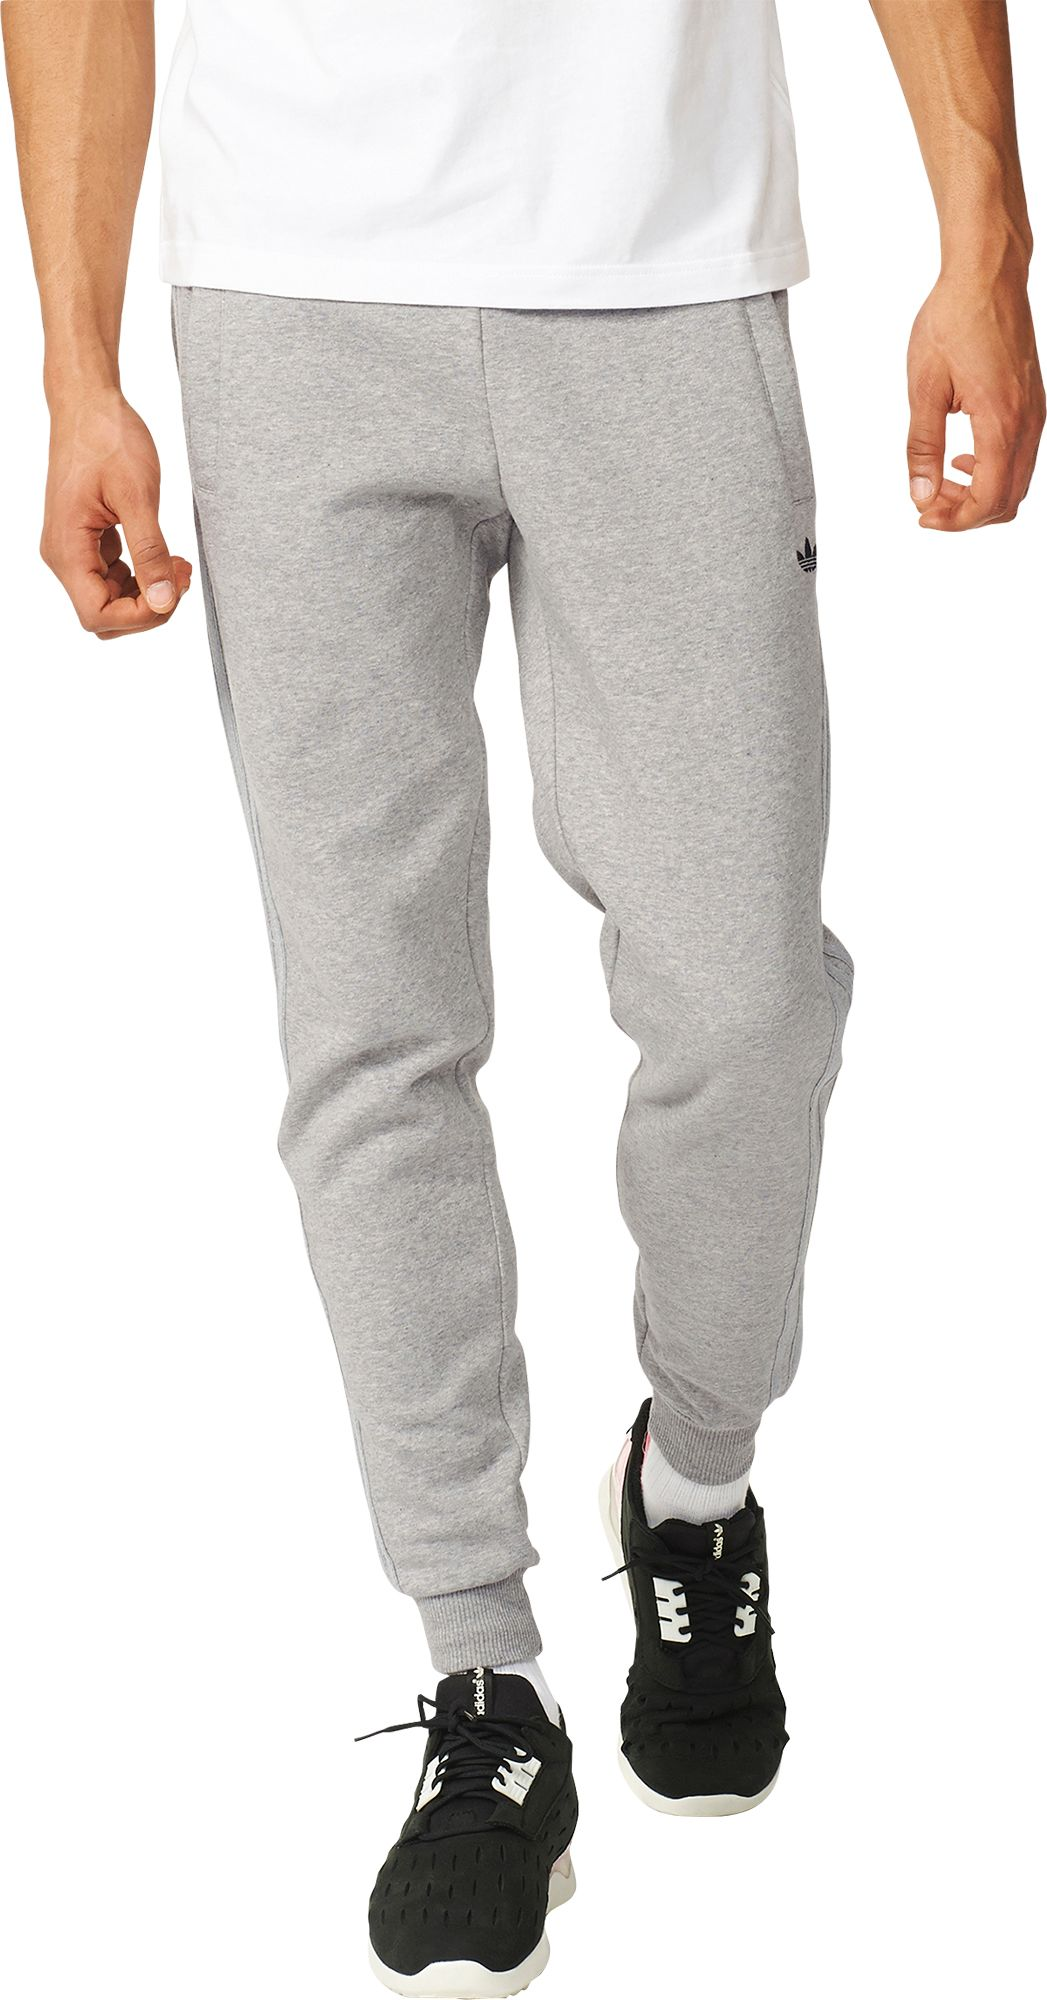 Find great deals on eBay for ankle sweatpants. Shop with confidence.